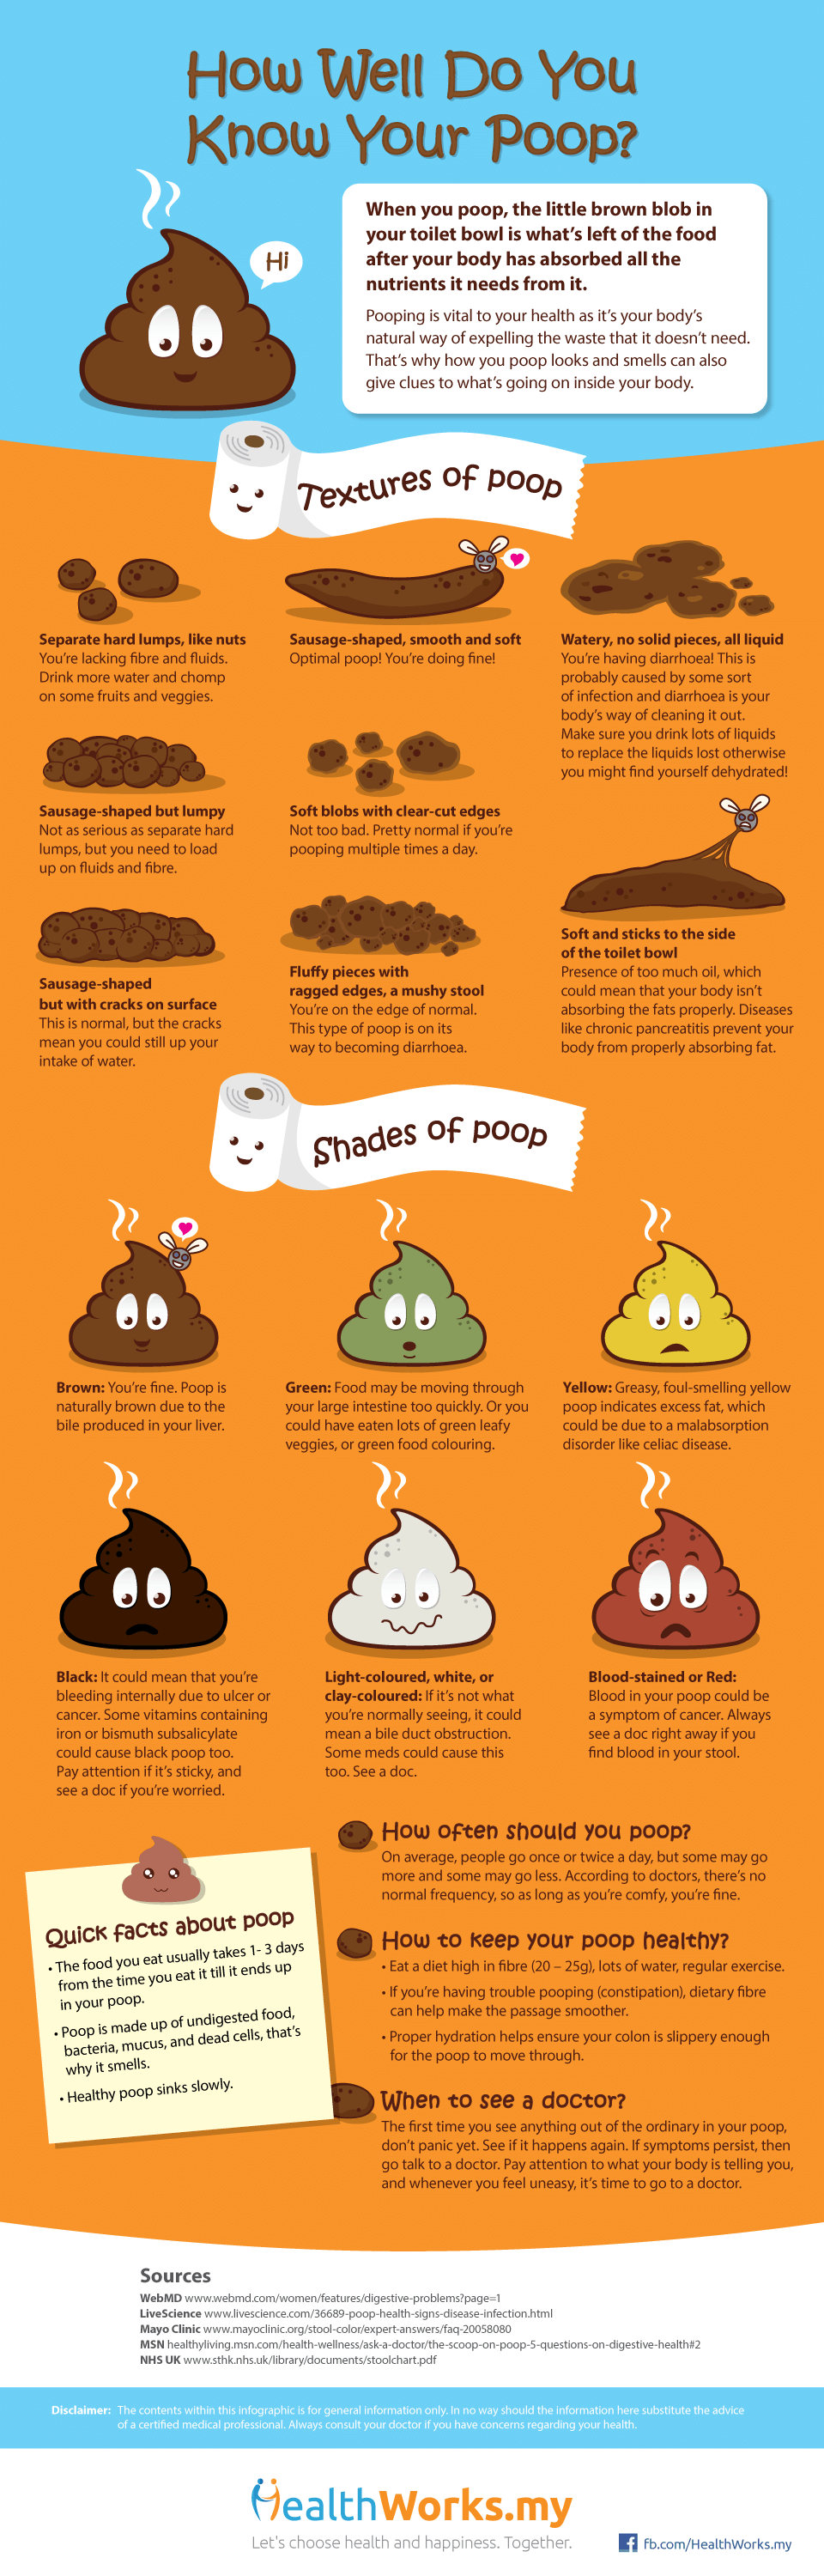 Poop-Infographic-Family-Friendly-Version